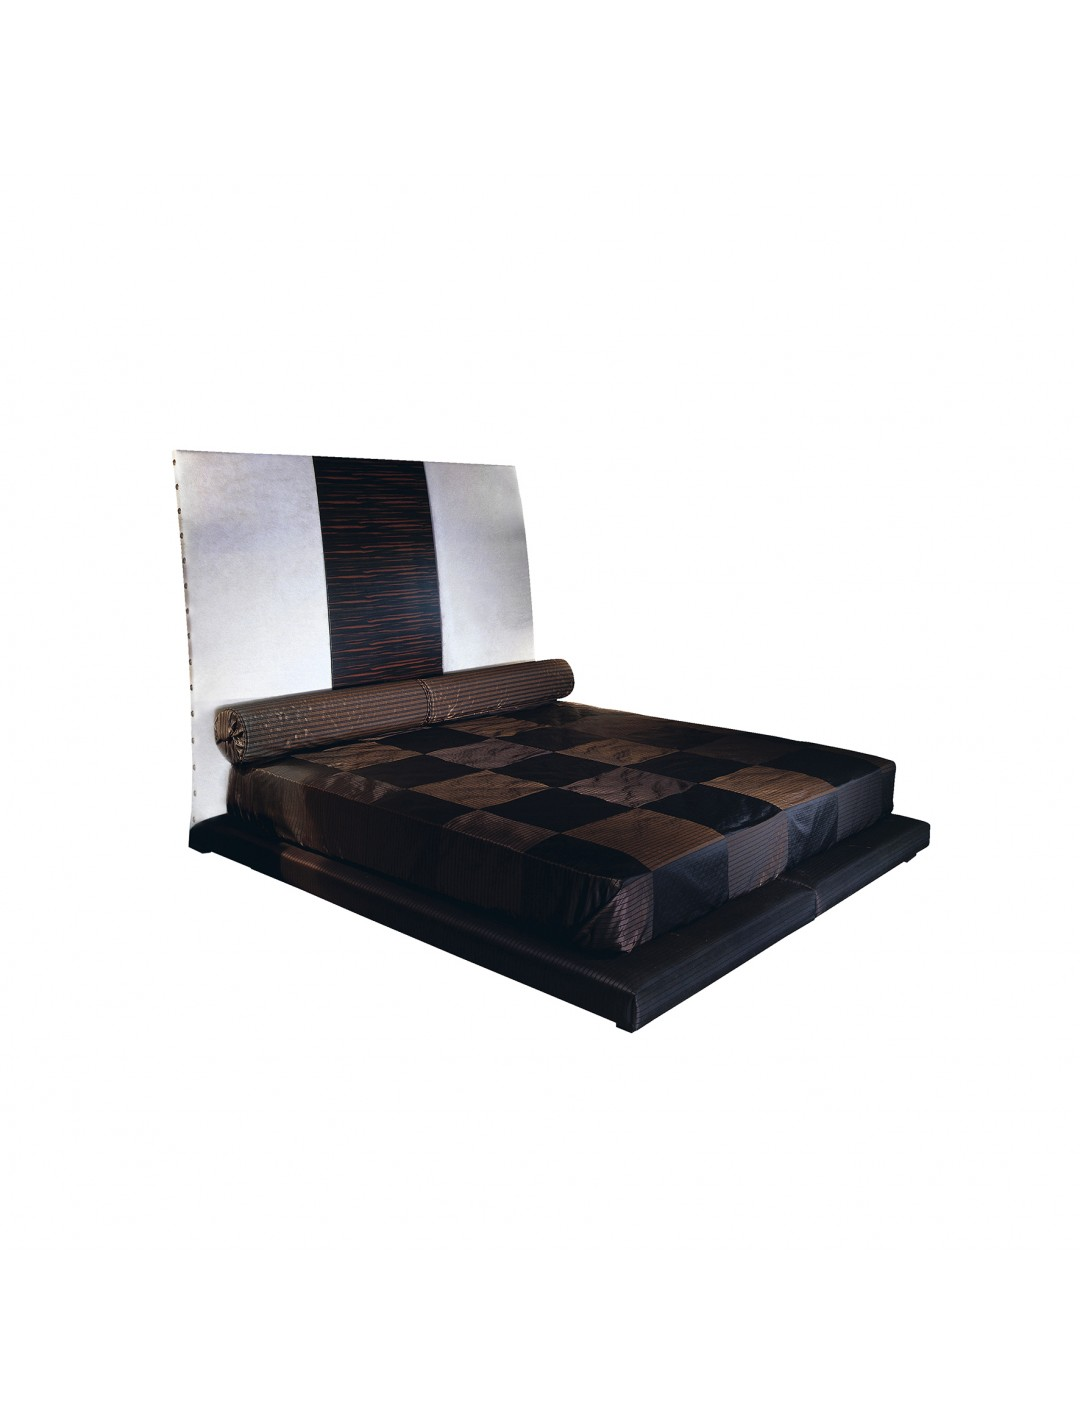 CULTURA BED (FOR 160*200 CM MATTRESS)